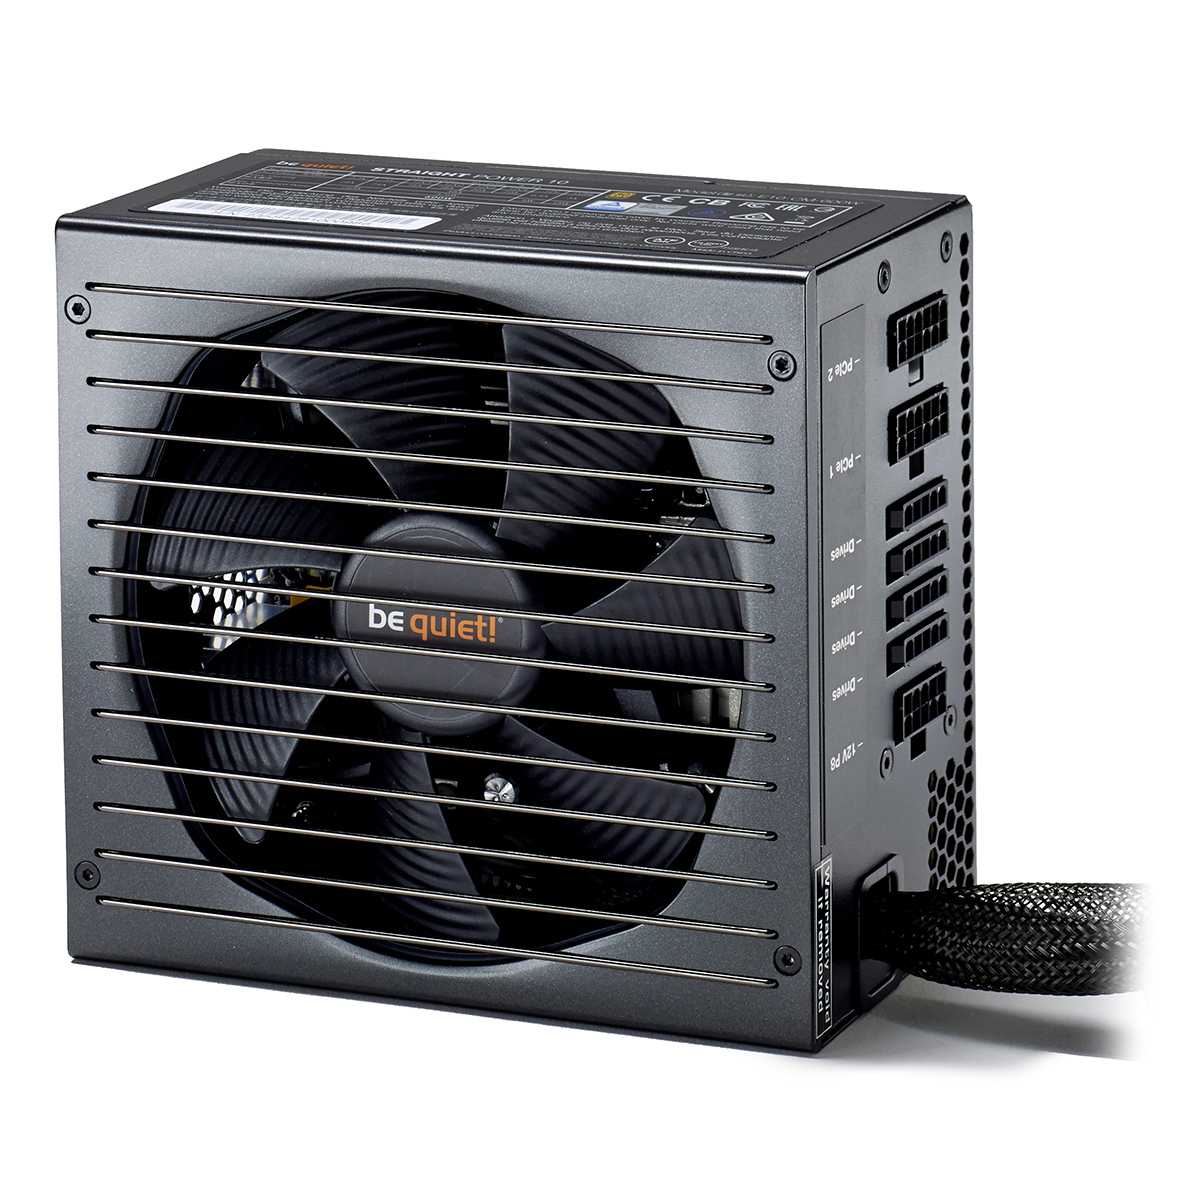 Alimentation PC be quiet! Straight Power 10 500W CM 80PLUS Gold Alimentation modulaire 500W ATX 12V 2.4/ EPS 12V 2.92 (Garantie 5 ans par Be Quiet !)